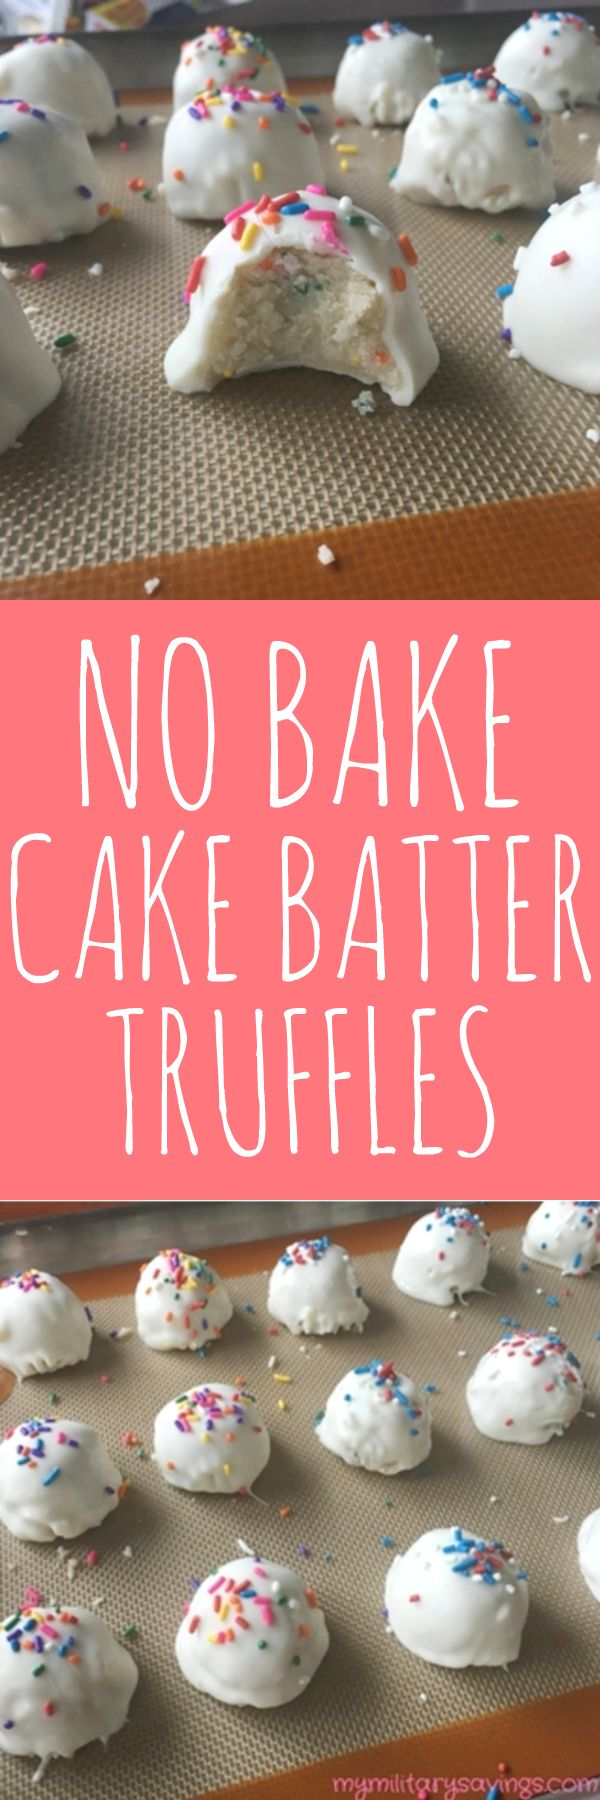 How to make no bake cake batter truffles! Perfect for holidays and parties! Add this to your no-bake desserts recipes board!